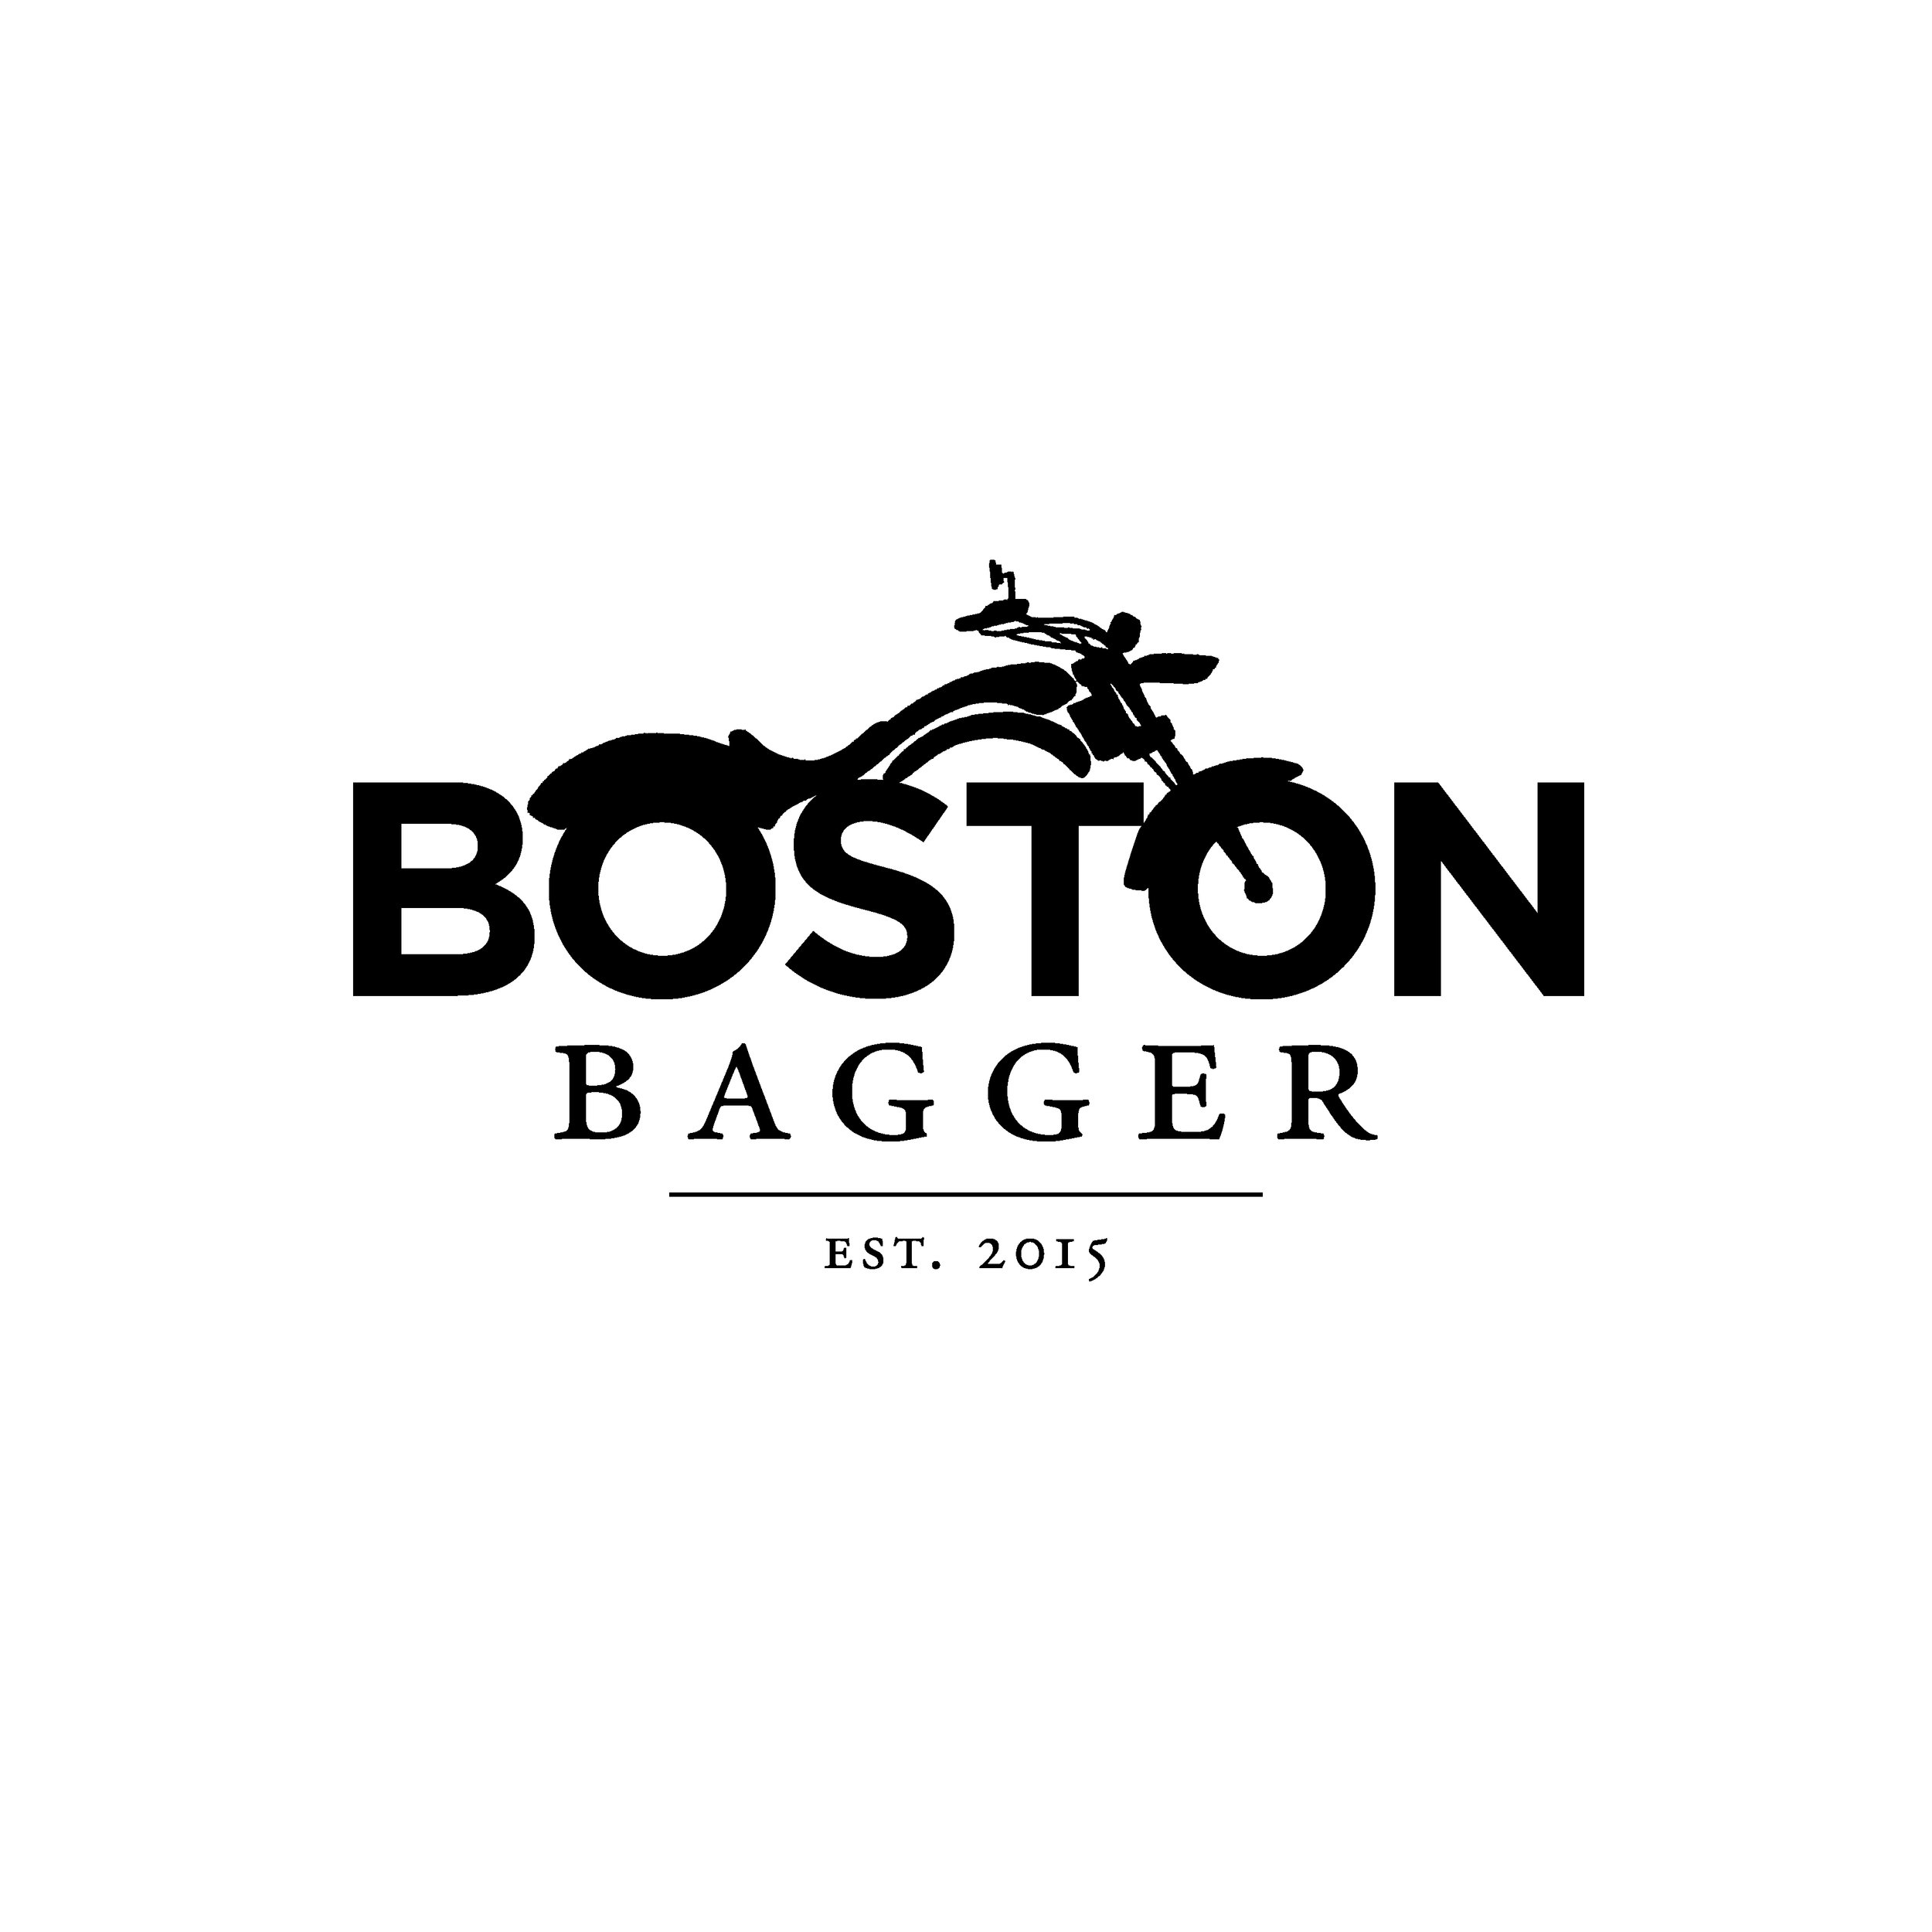 Boston Bagger logo-03.jpg